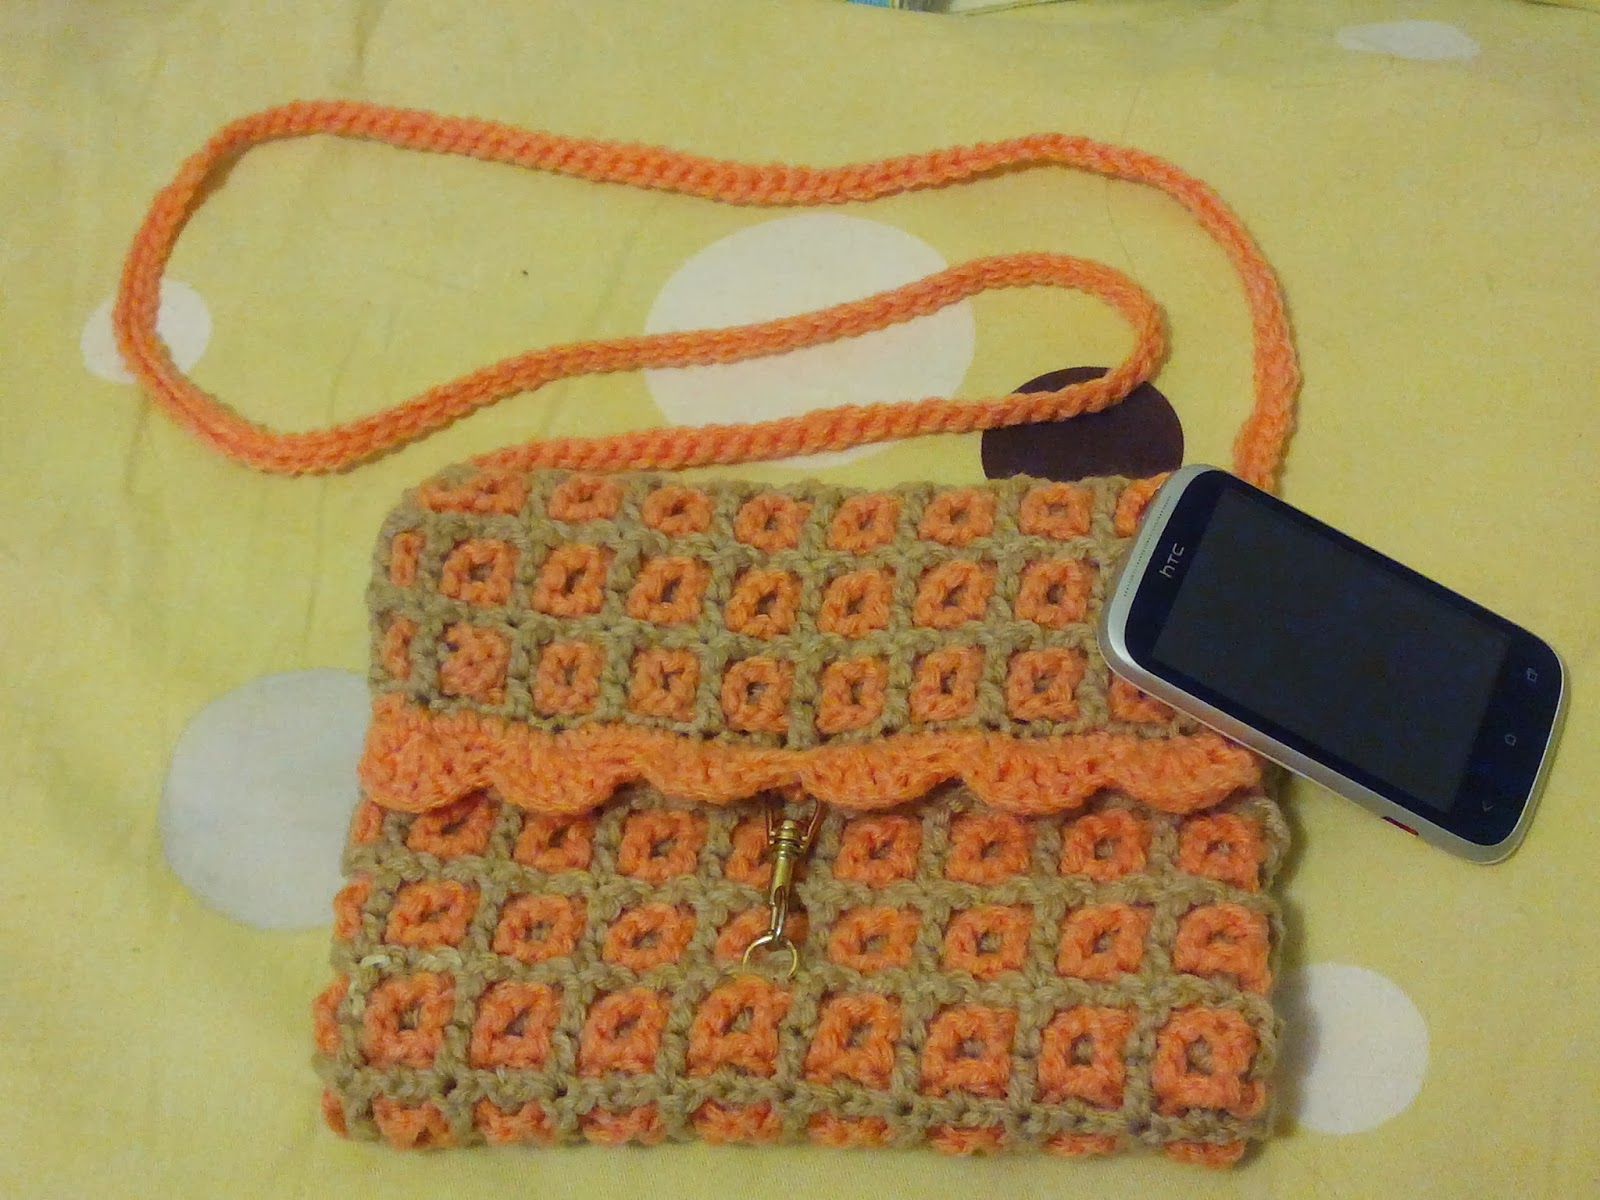 Sling bag crochet - This Sling Bag Is Made Using Intermeshing Crochet I Learnt This Stitch From My Mum S Book And Converted It Into A Bag